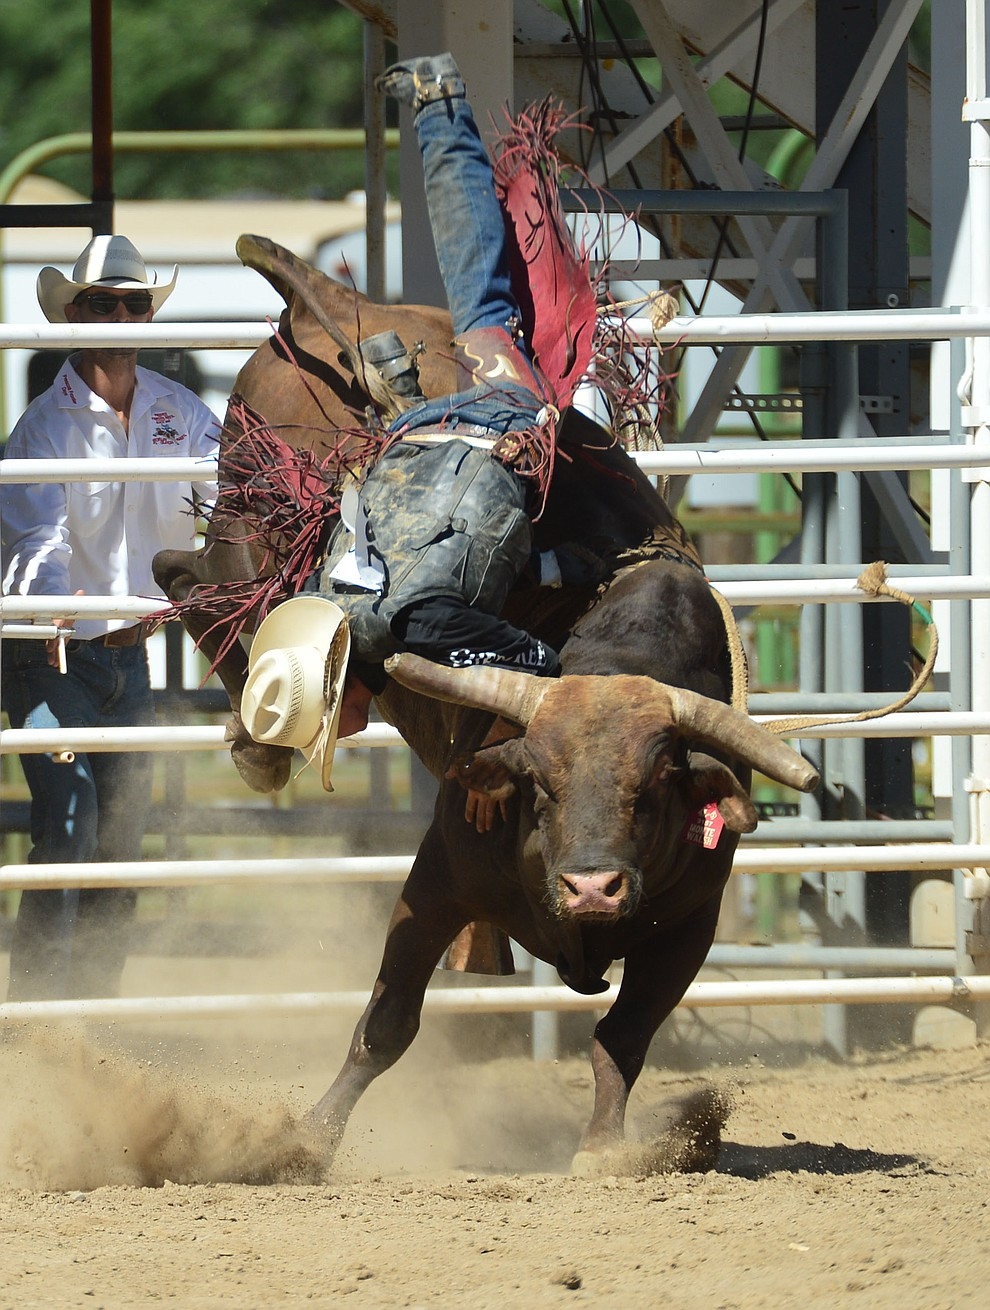 Clay Pannell goes up and off of Monte Walsh in the bull riding during the fourth performance of the Prescott Frontier Days Rodeo Thursday July 4, 2019.  (Les Stukenberg/Courier)